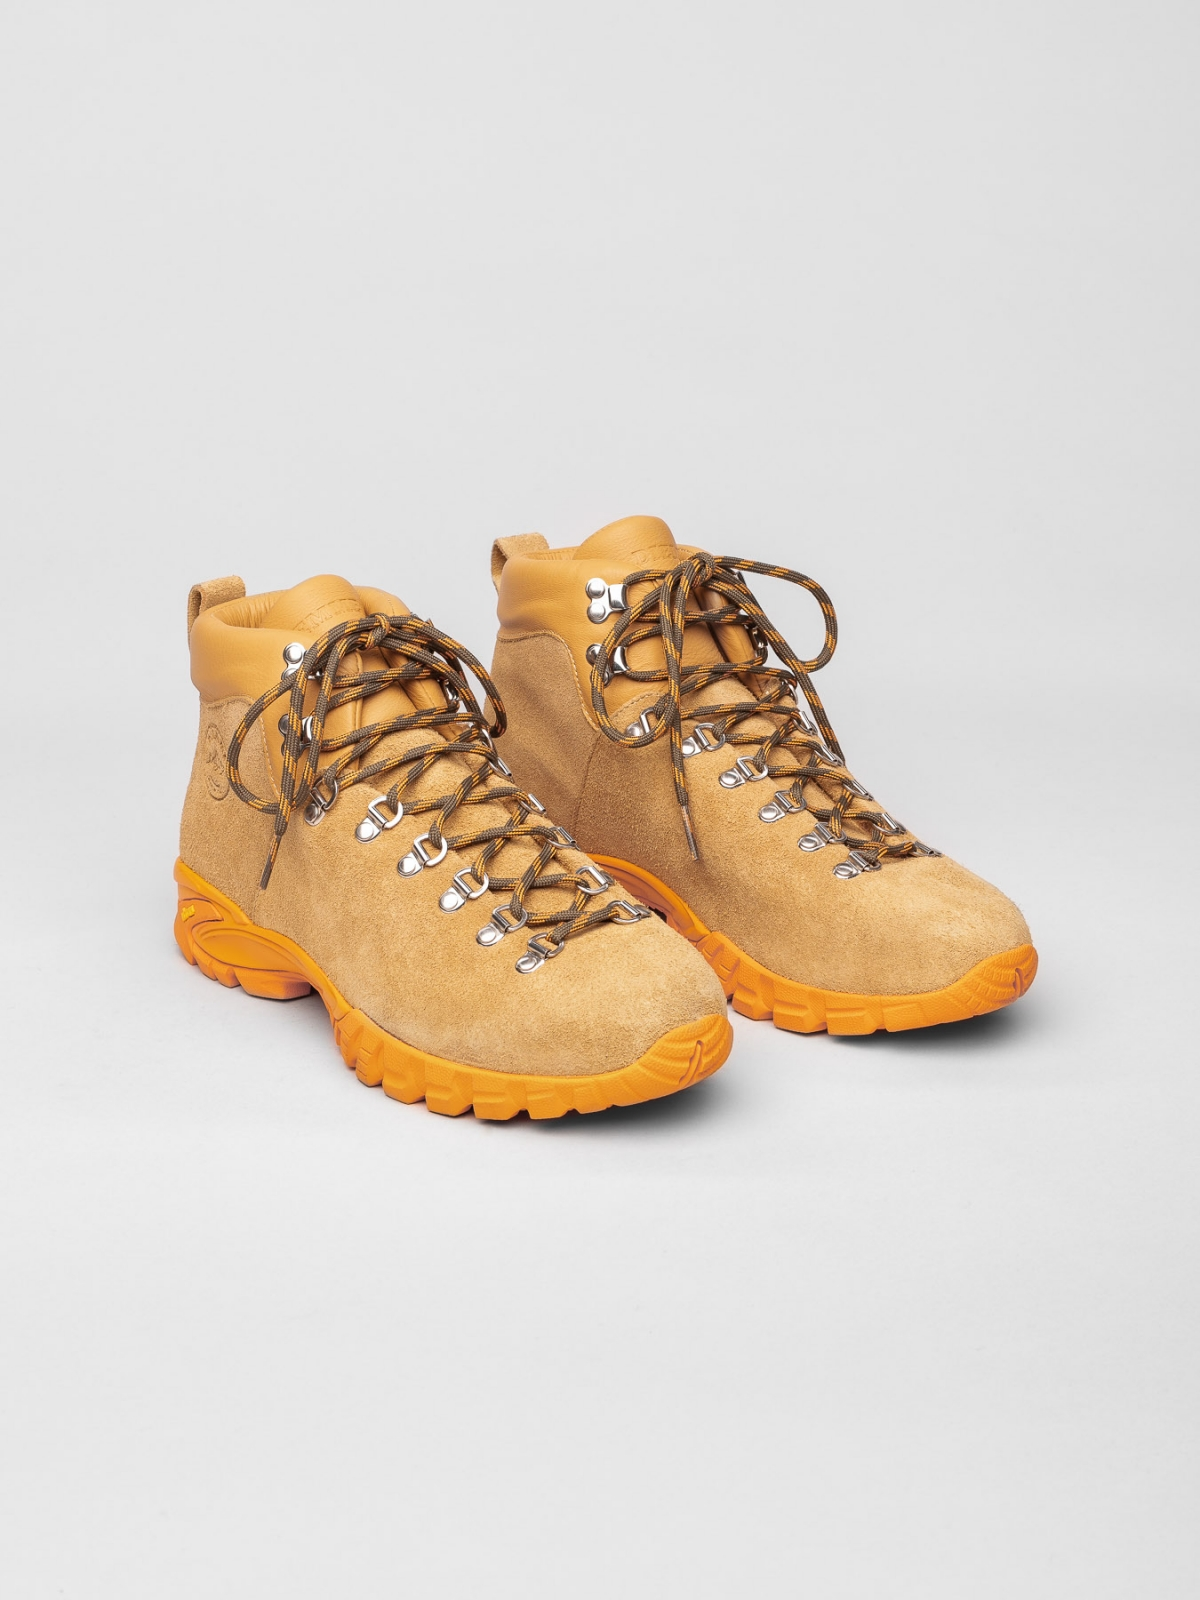 Diemme - Maser Lt. Hiker Beige - Men Mid-top Hiking Boot